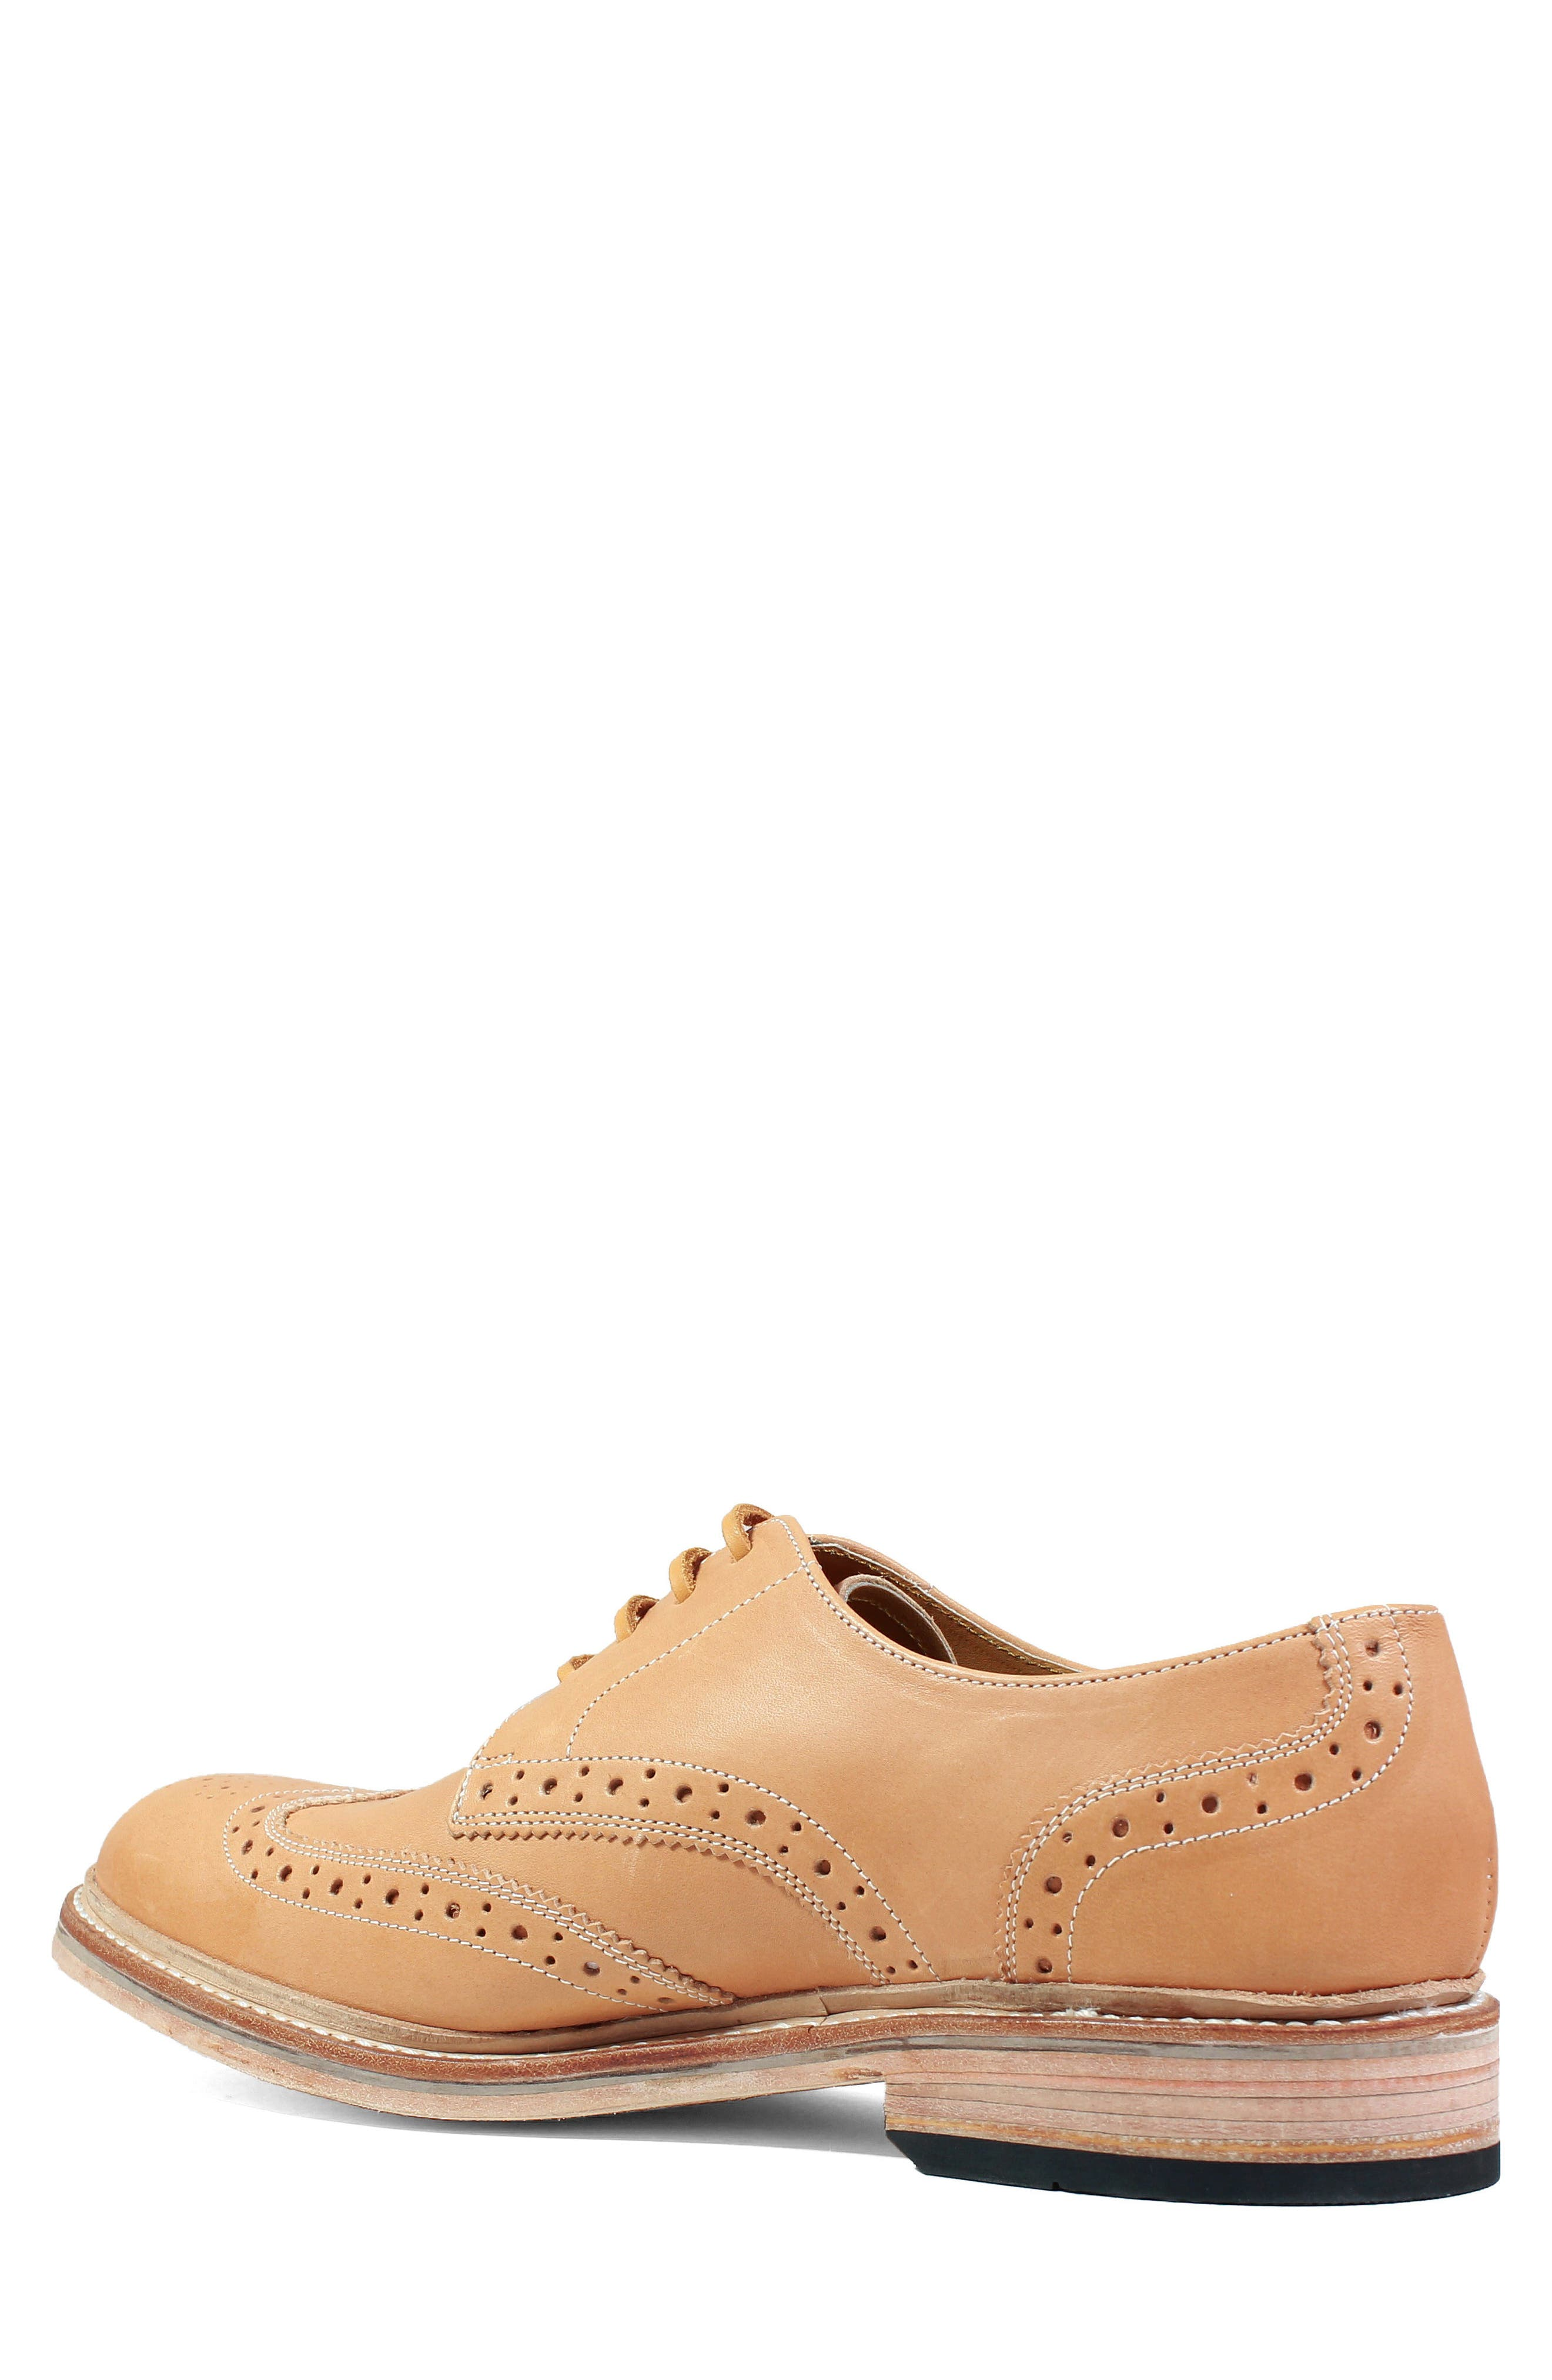 M2 Wingtip Derby,                             Alternate thumbnail 2, color,                             Natural Leather